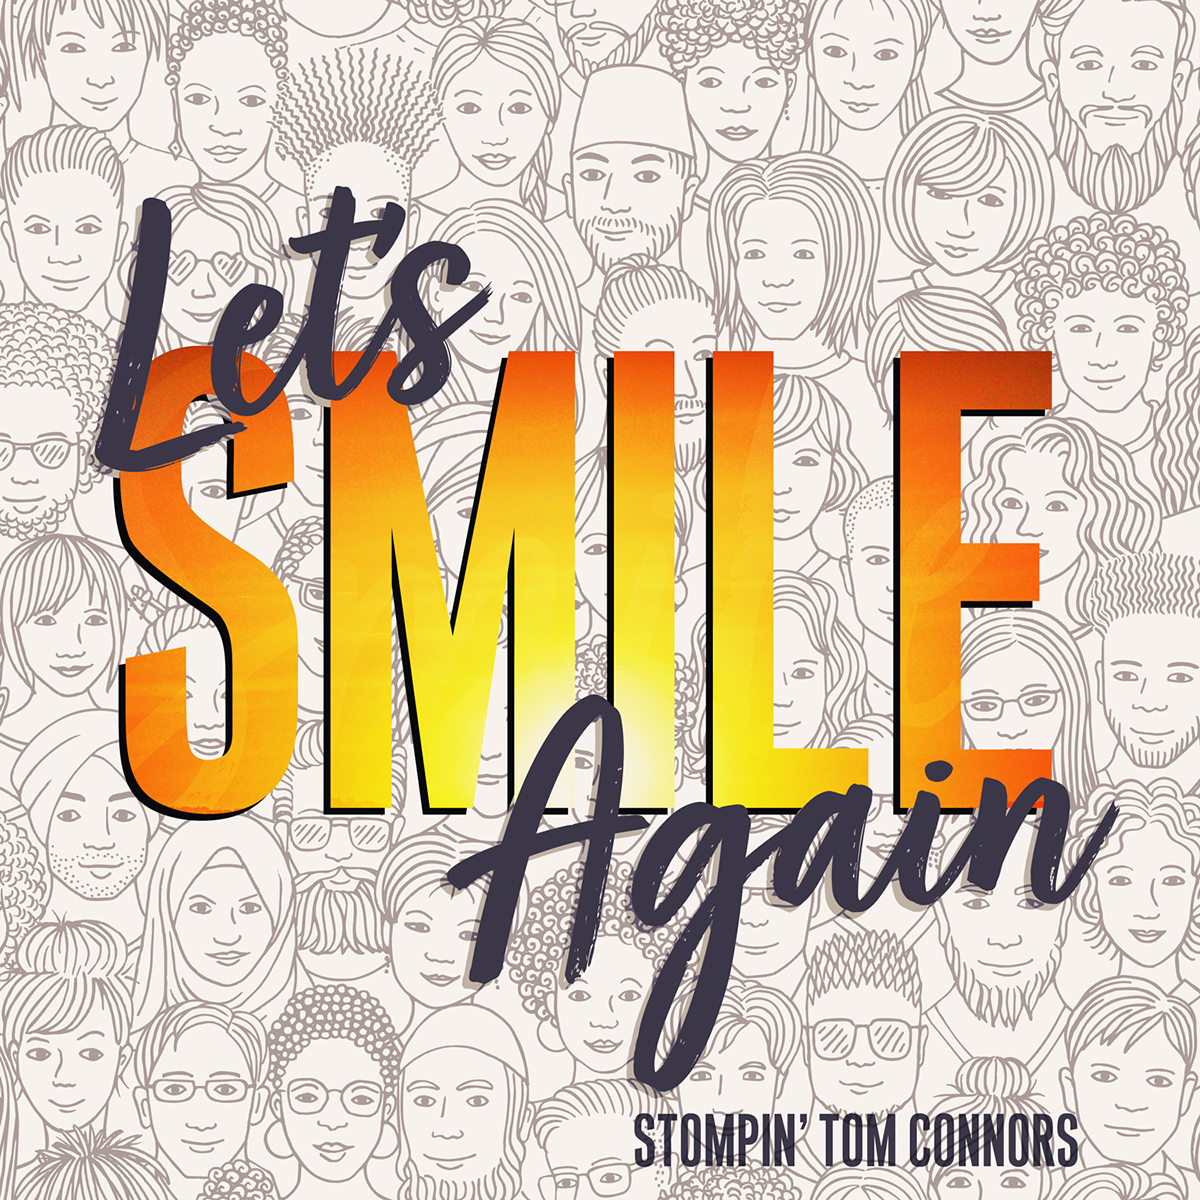 Submit Your Smile!